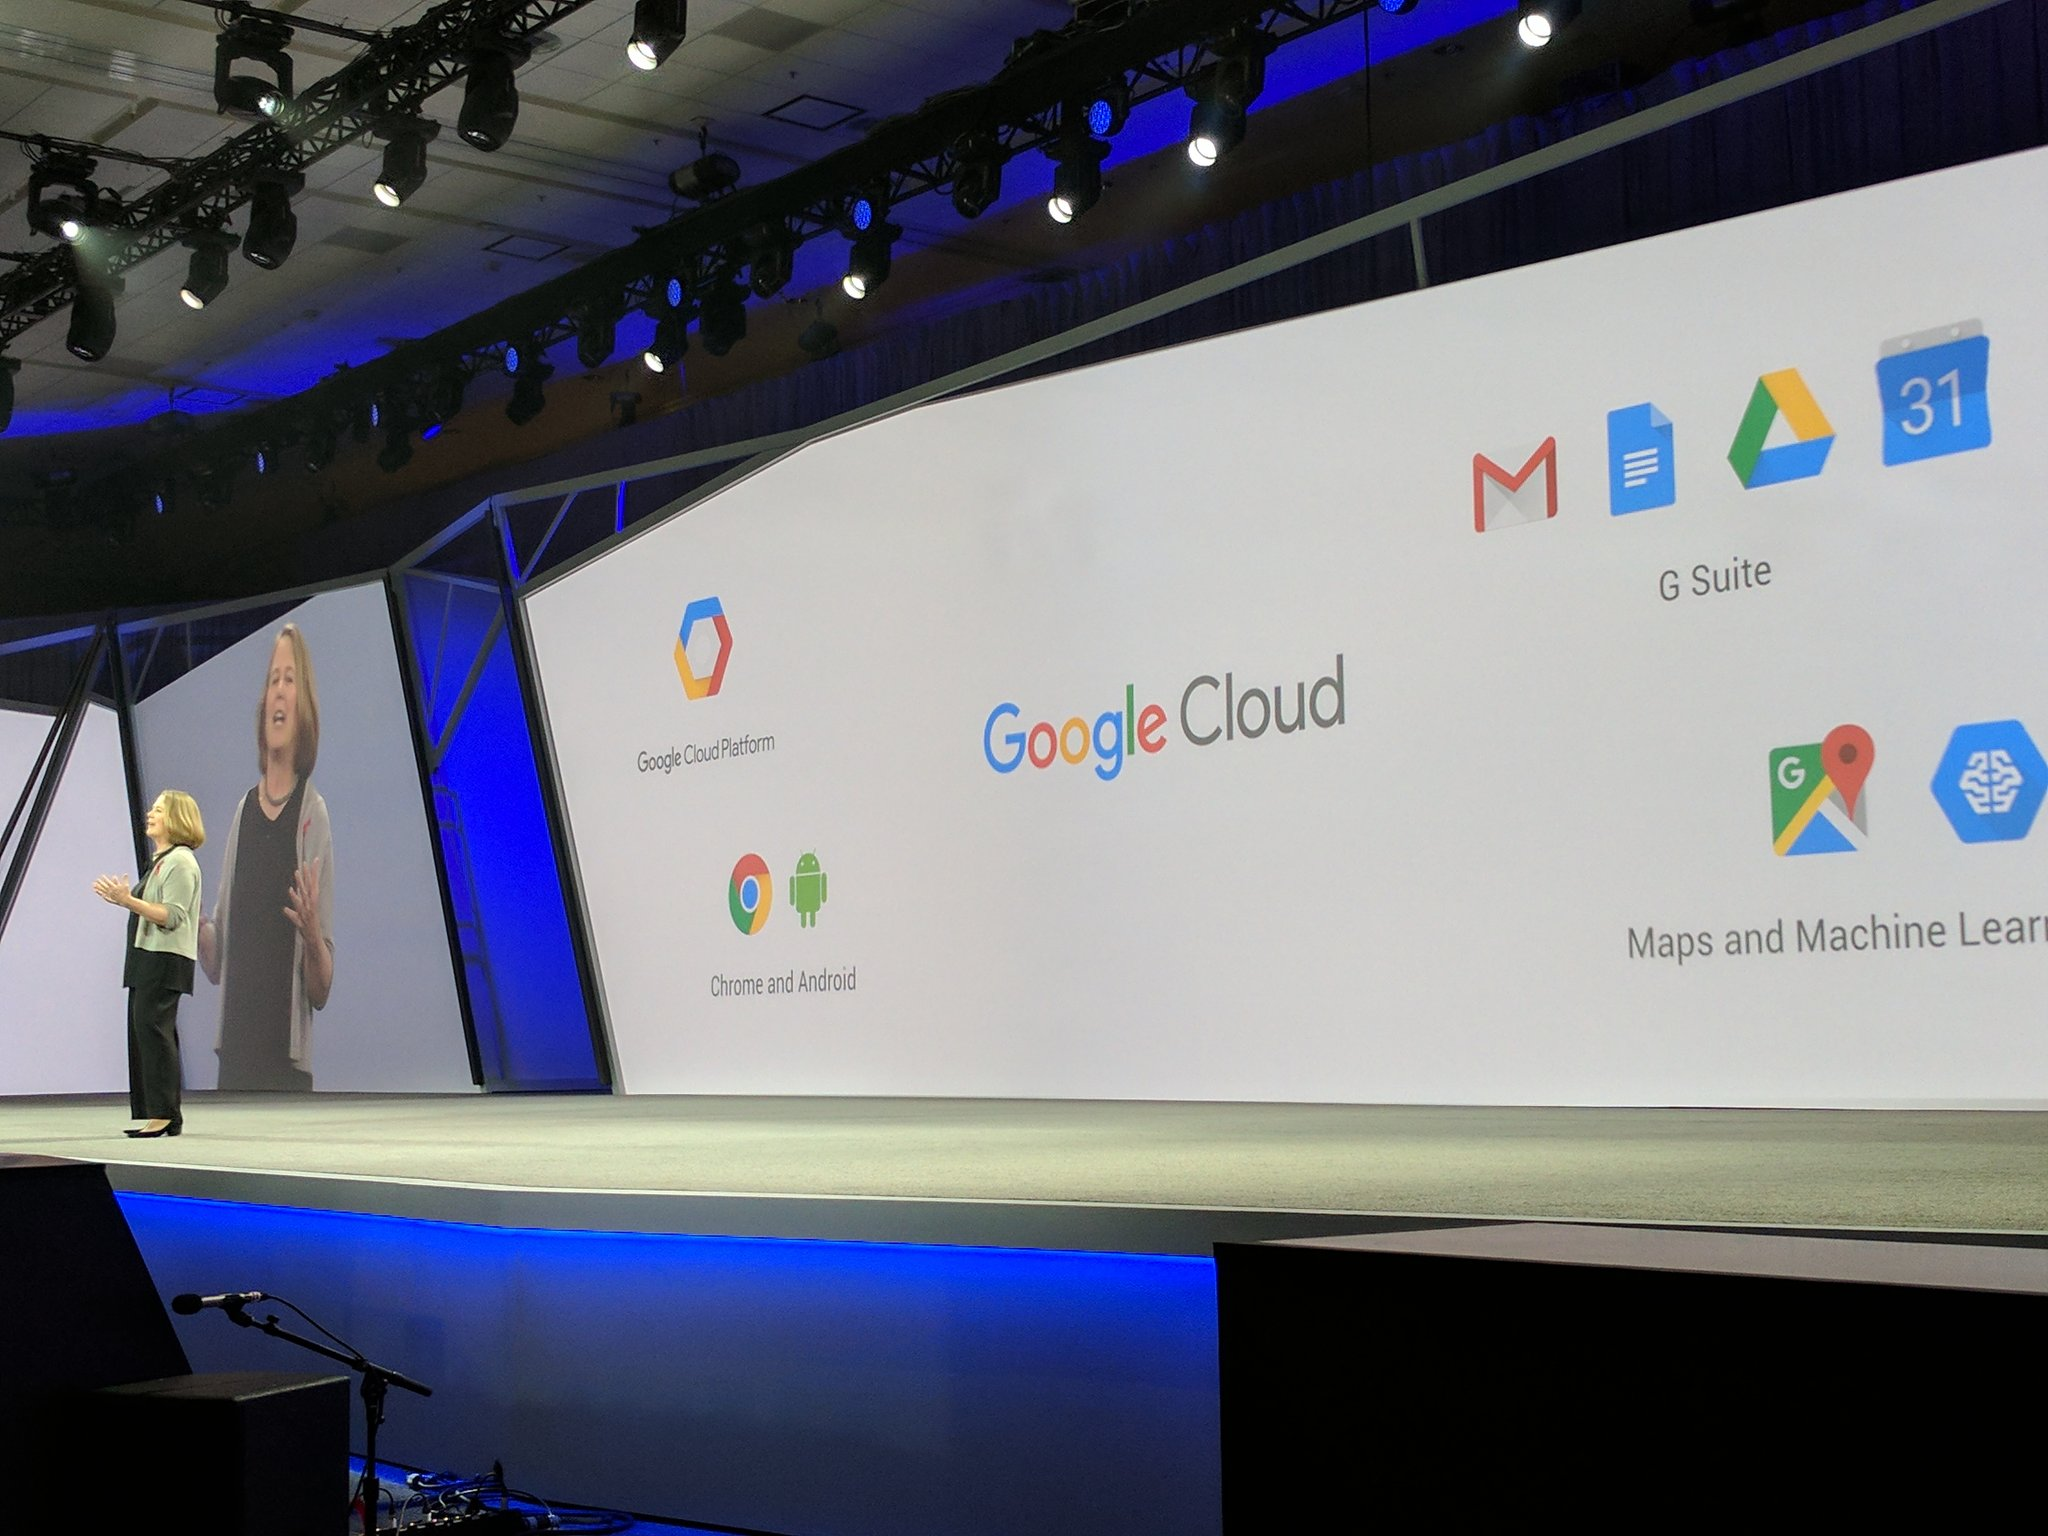 And of course Greene starts with @googlecloud https://t.co/xfrXSBzoy9